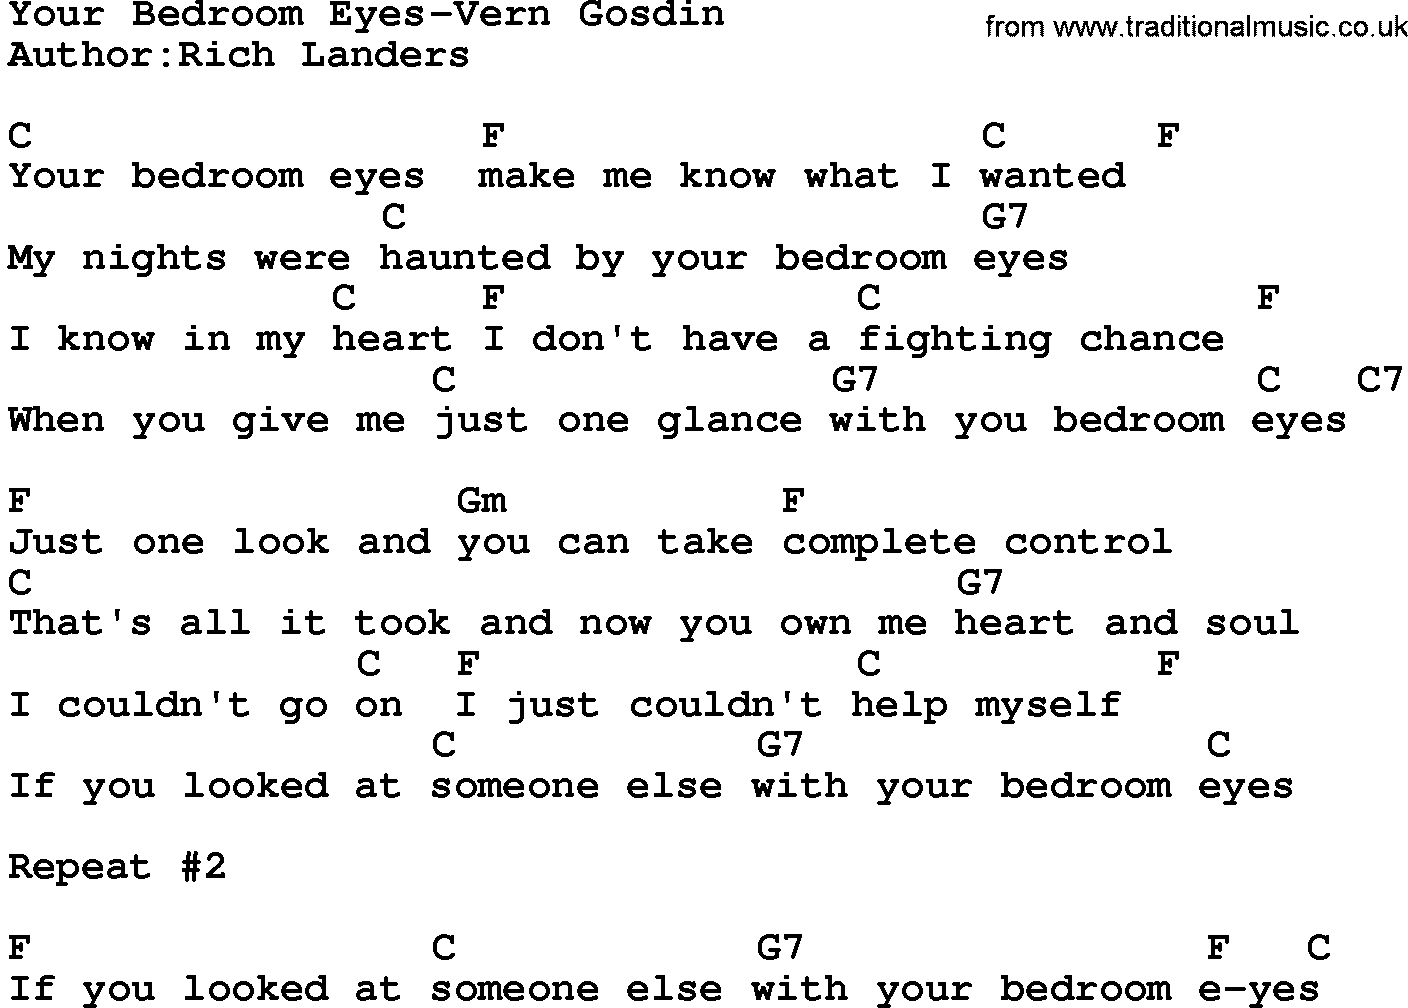 download your bedroom eyes vern gosdin lyrics and chords as pdf file